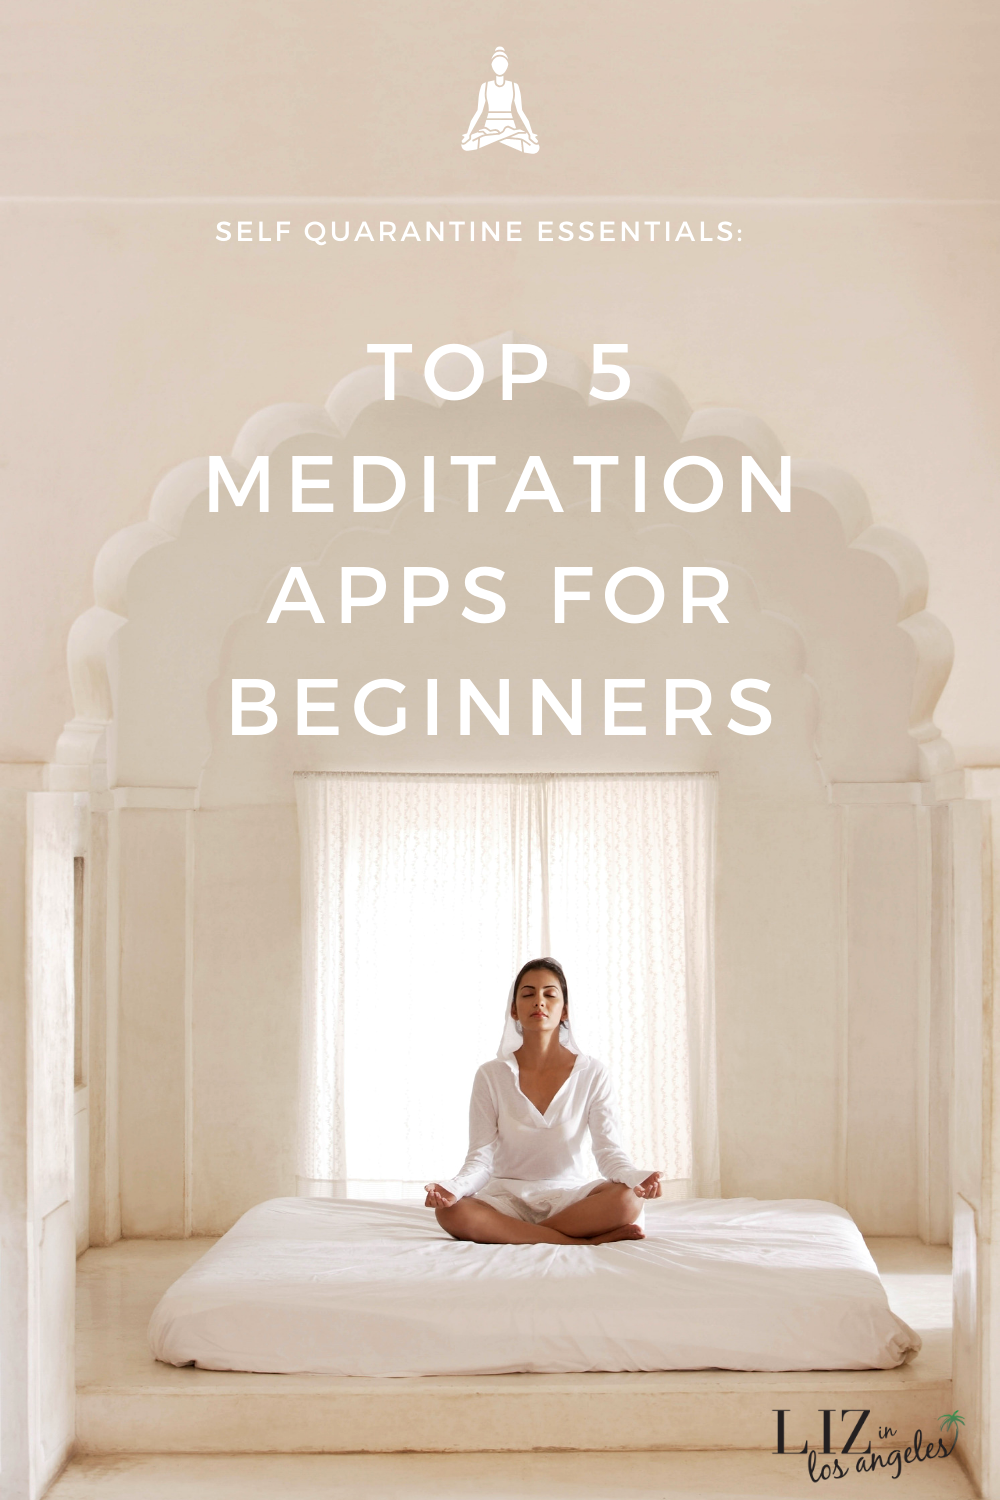 Self Quarantine Essentials: Top 5 Meditation Apps for Beginners, a blog post by Liz in Los Angeles, Los Angeles Lifestyle Blogger, an image of a woman meditating